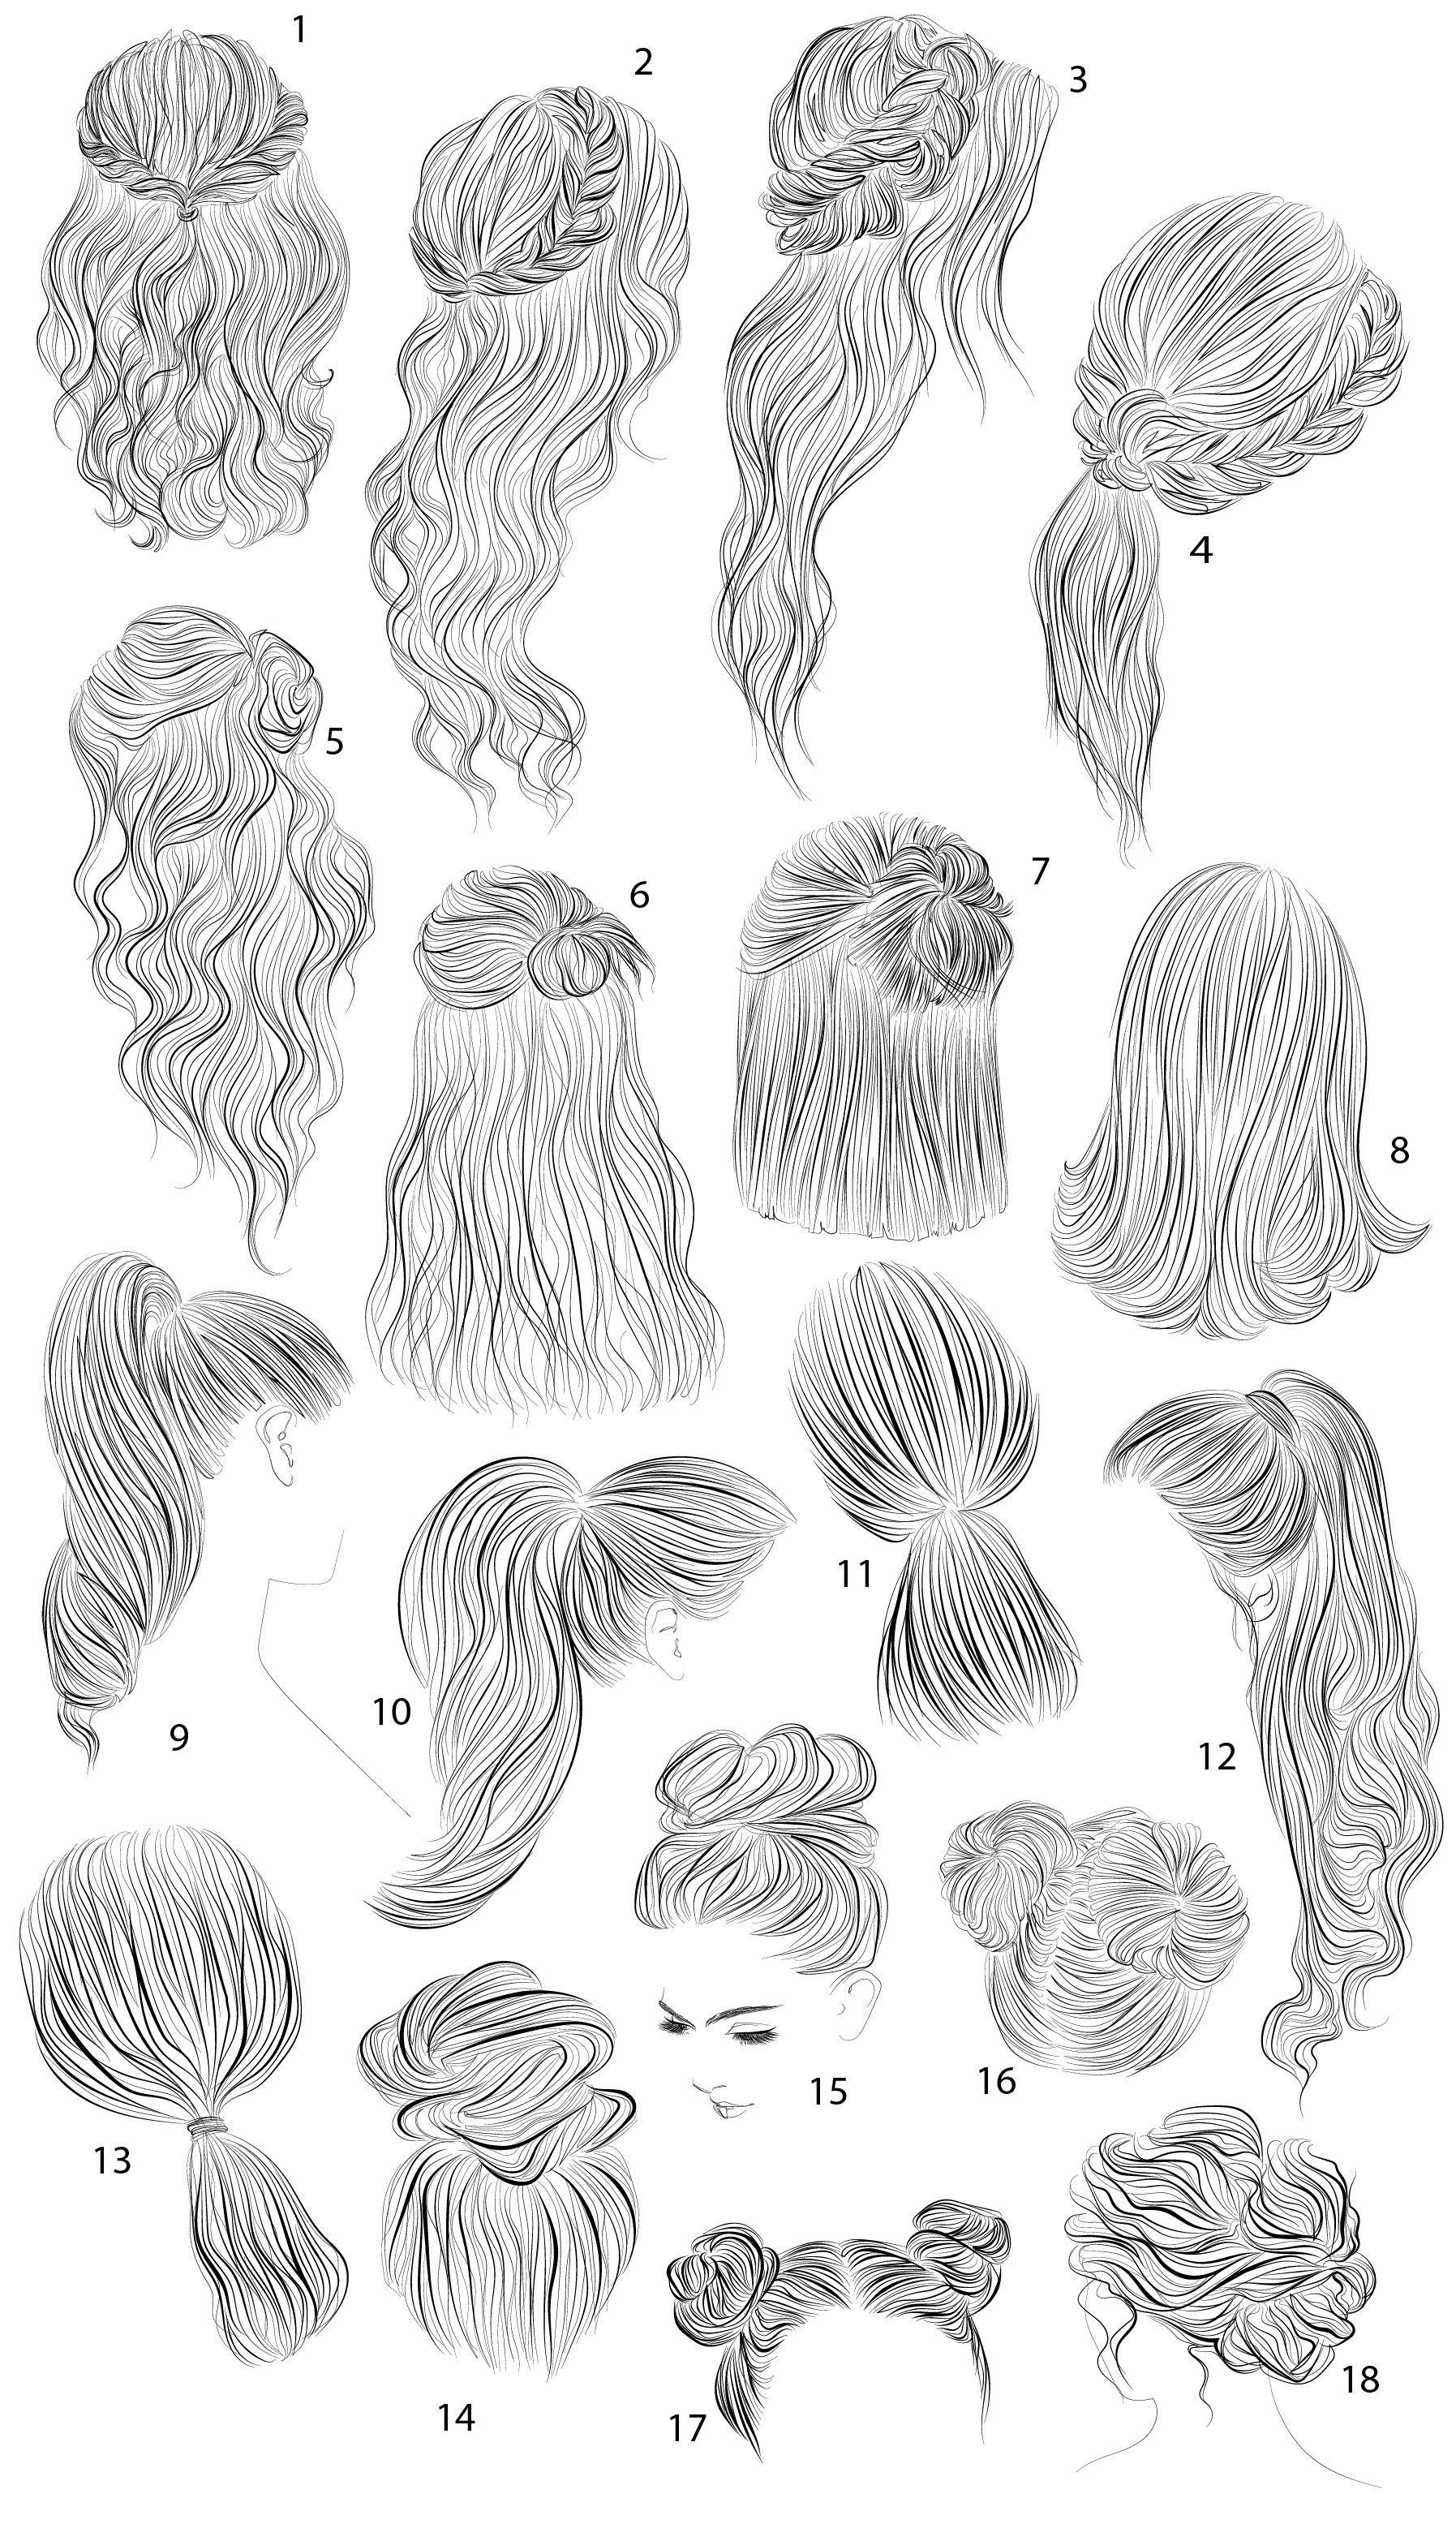 Photo of 18 vector female hairstyles by colorshop on Creative Market,  #colorshop #Creative #different…